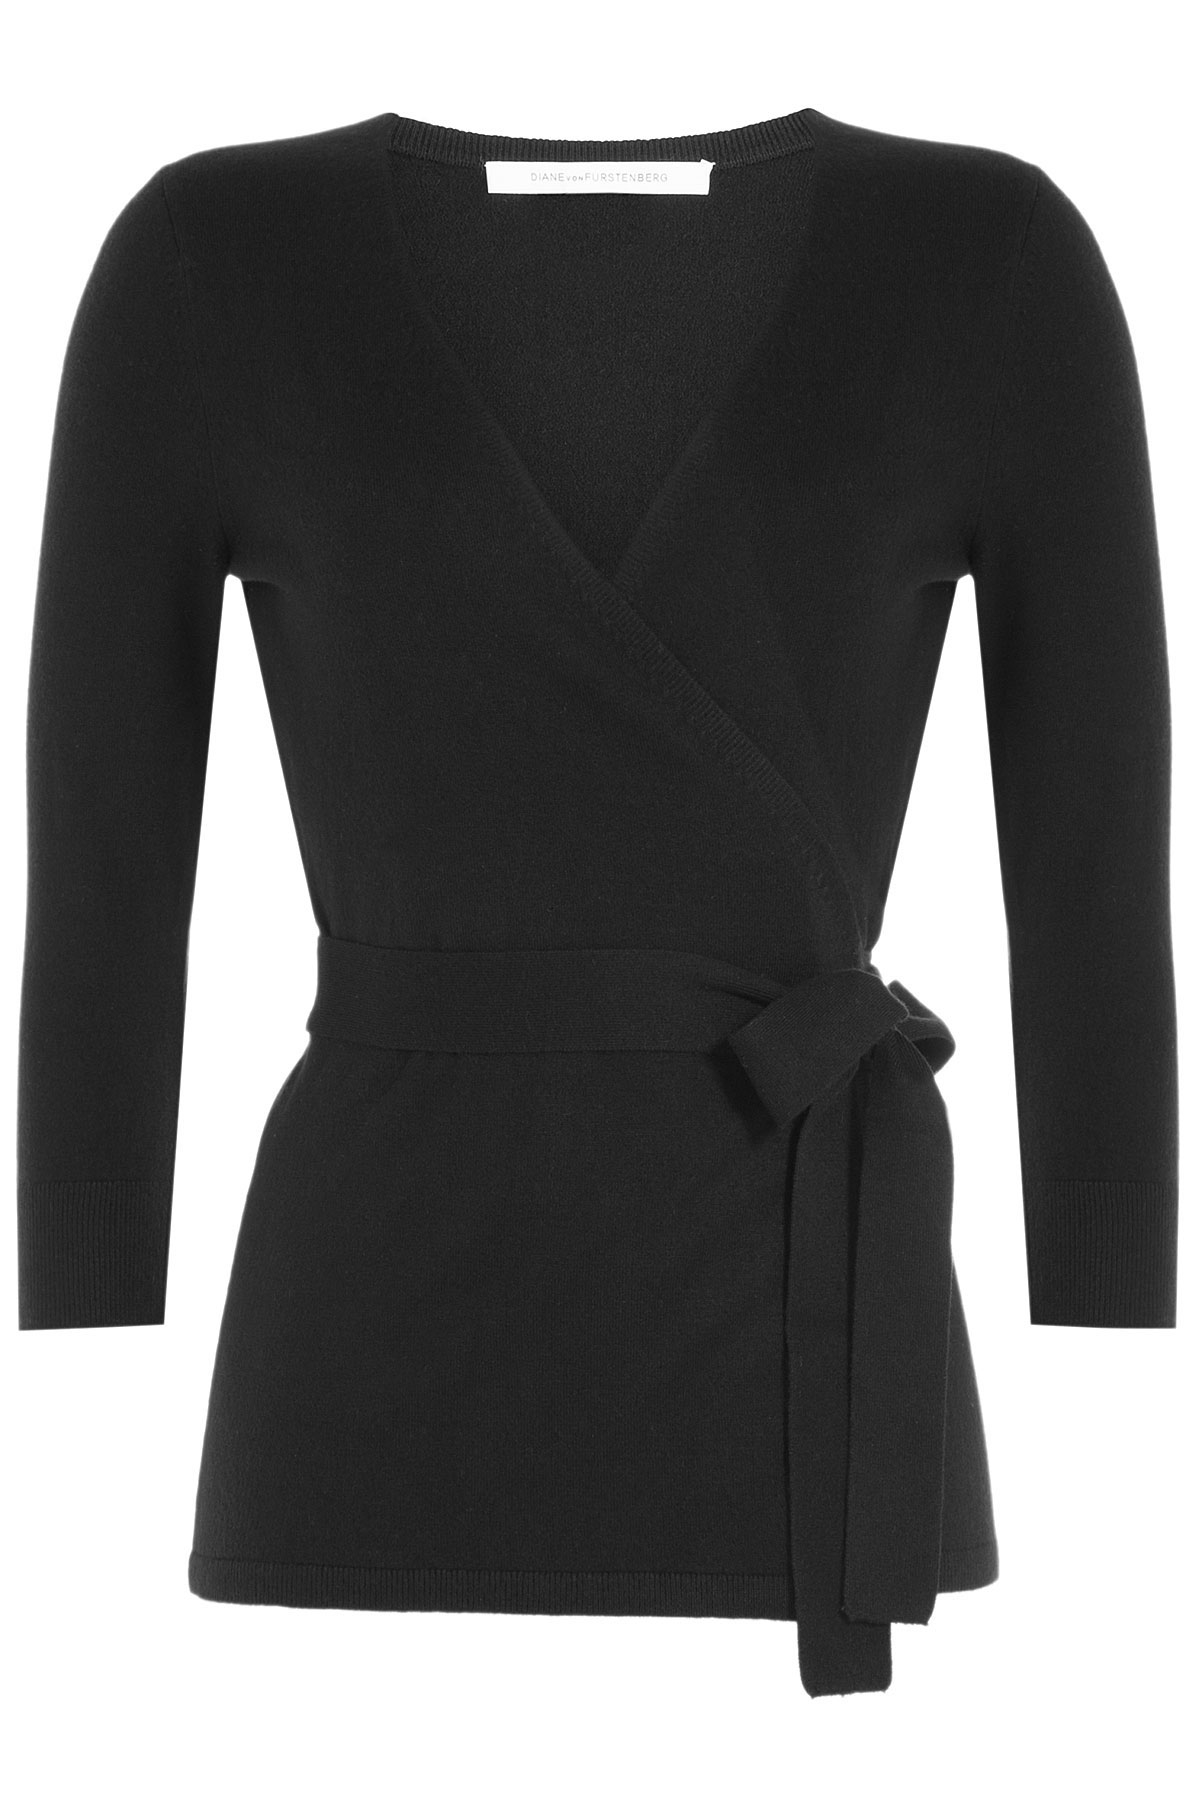 Diane von furstenberg Wrap Around Cardigan With Silk And Cashmere ...